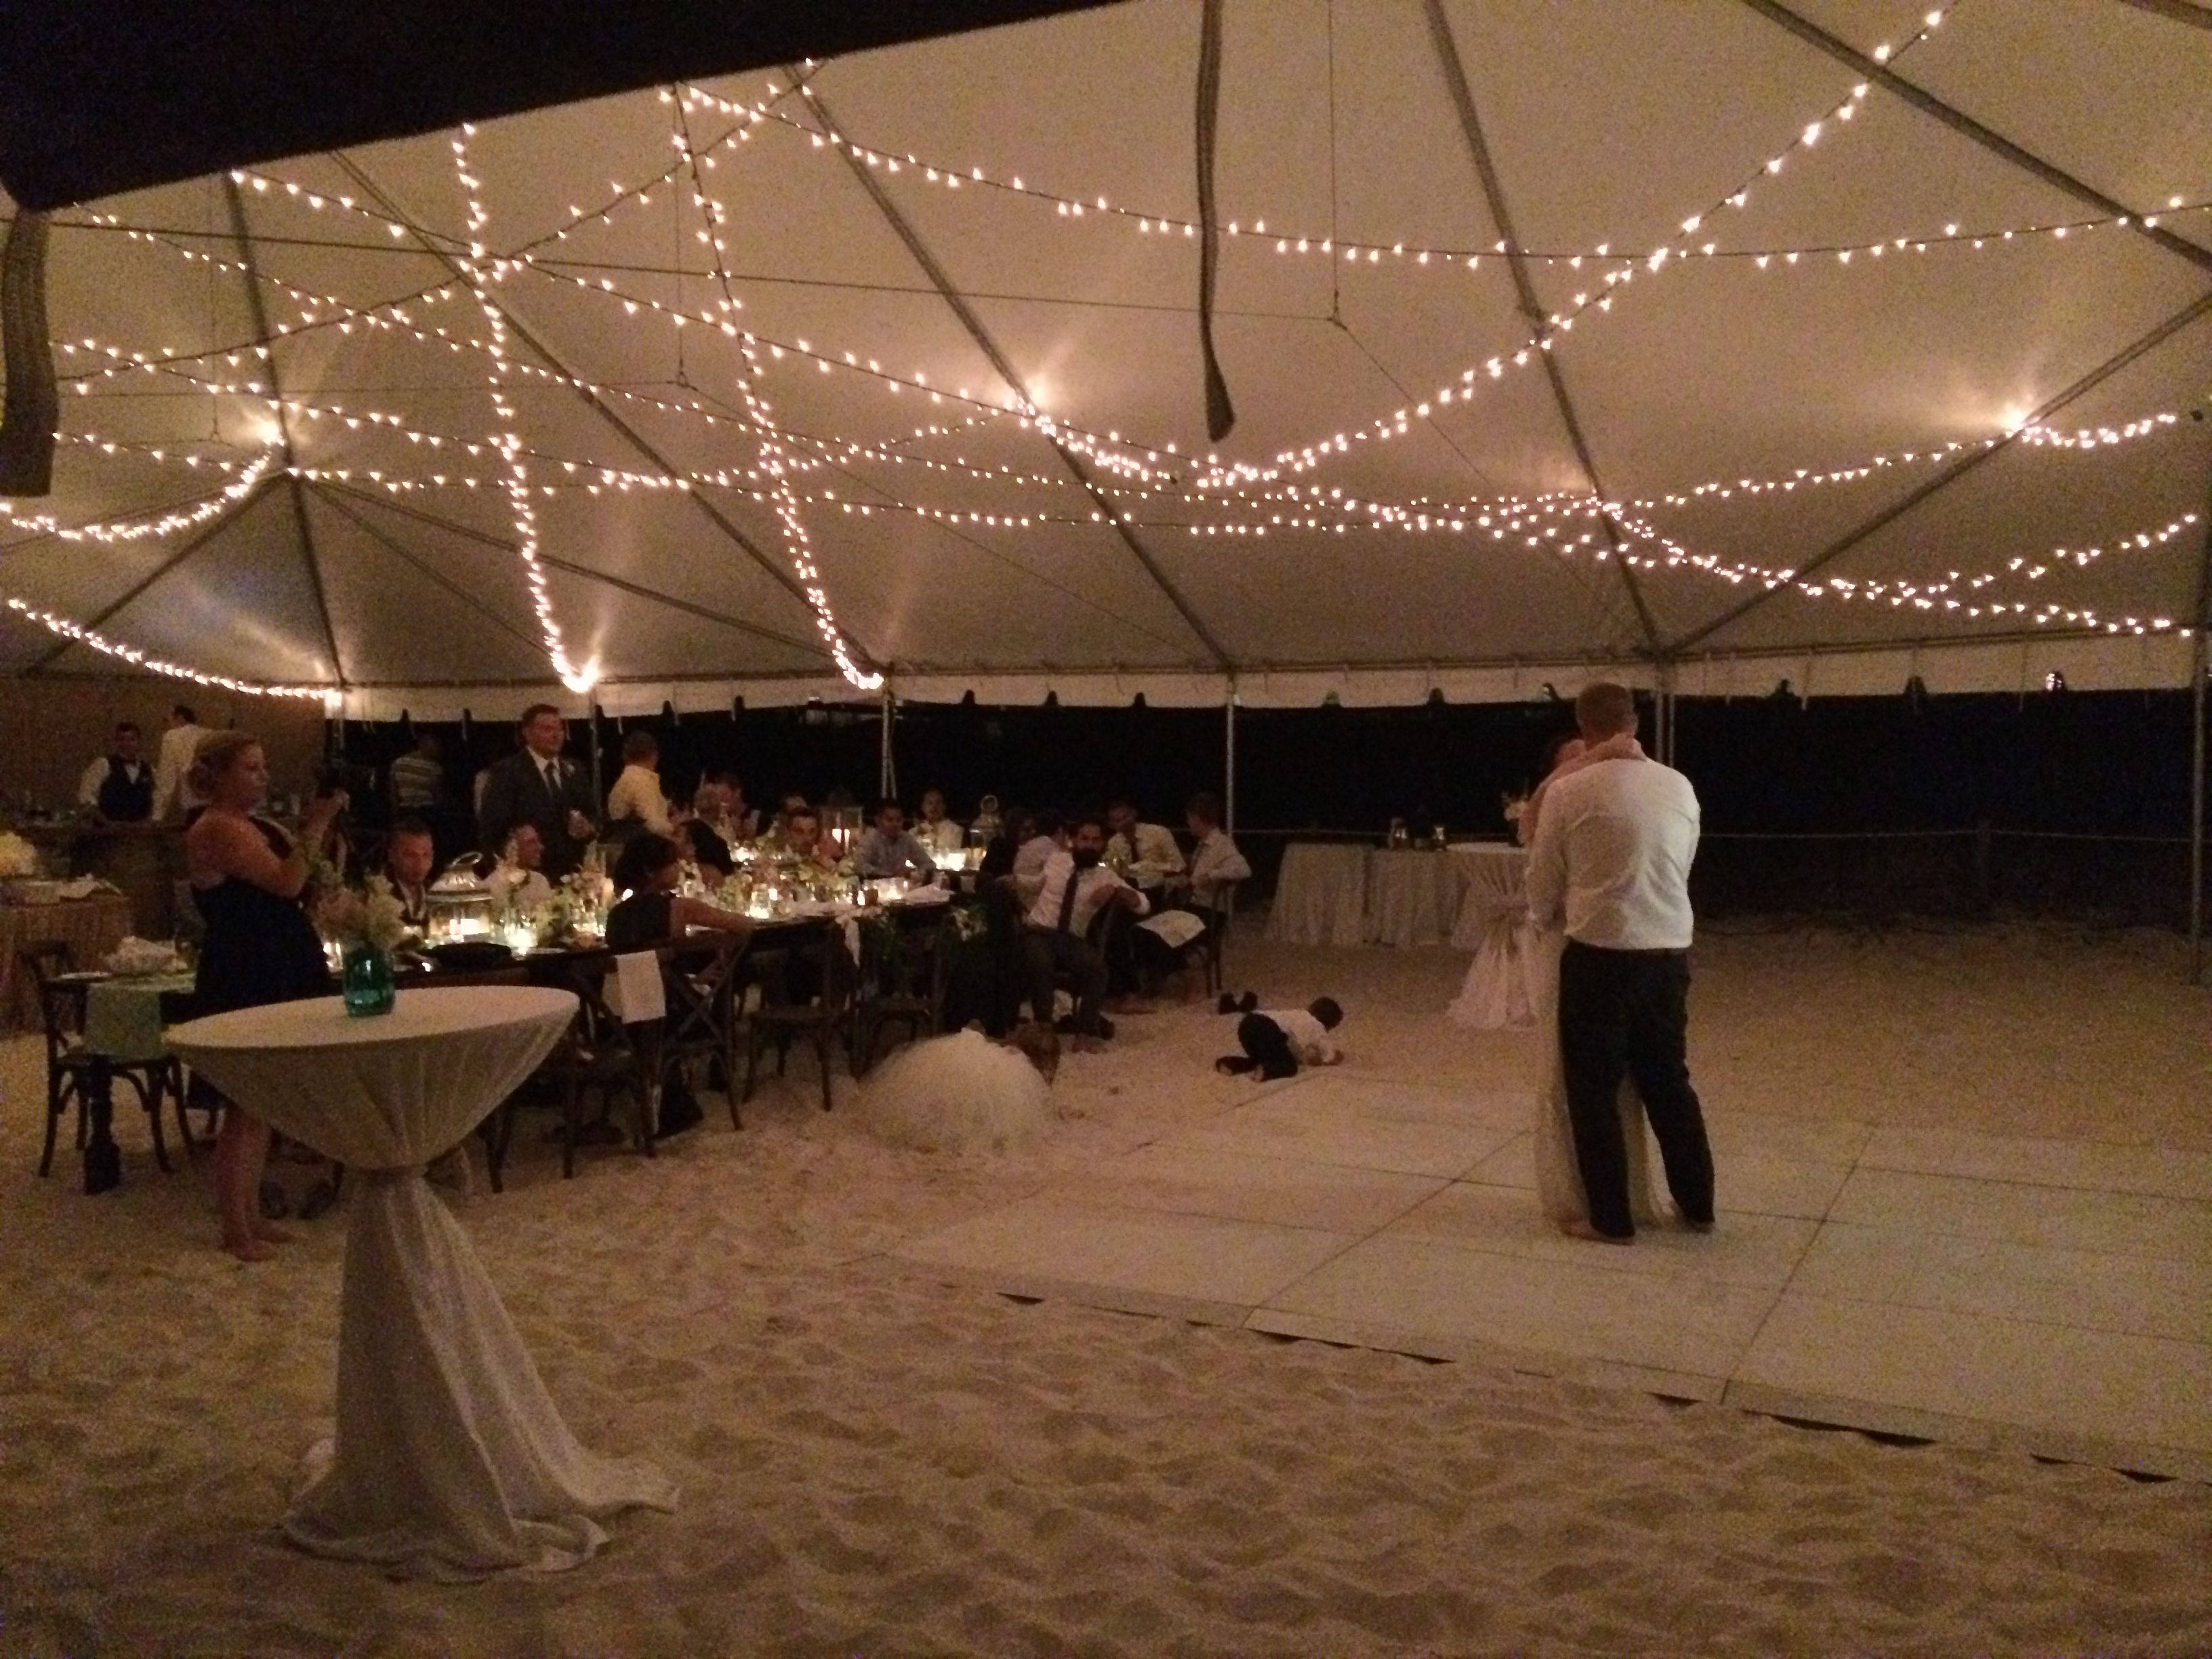 Panama City Beach Fl Wedding Reception On The With String Lights Weaved Into Tent In Sand